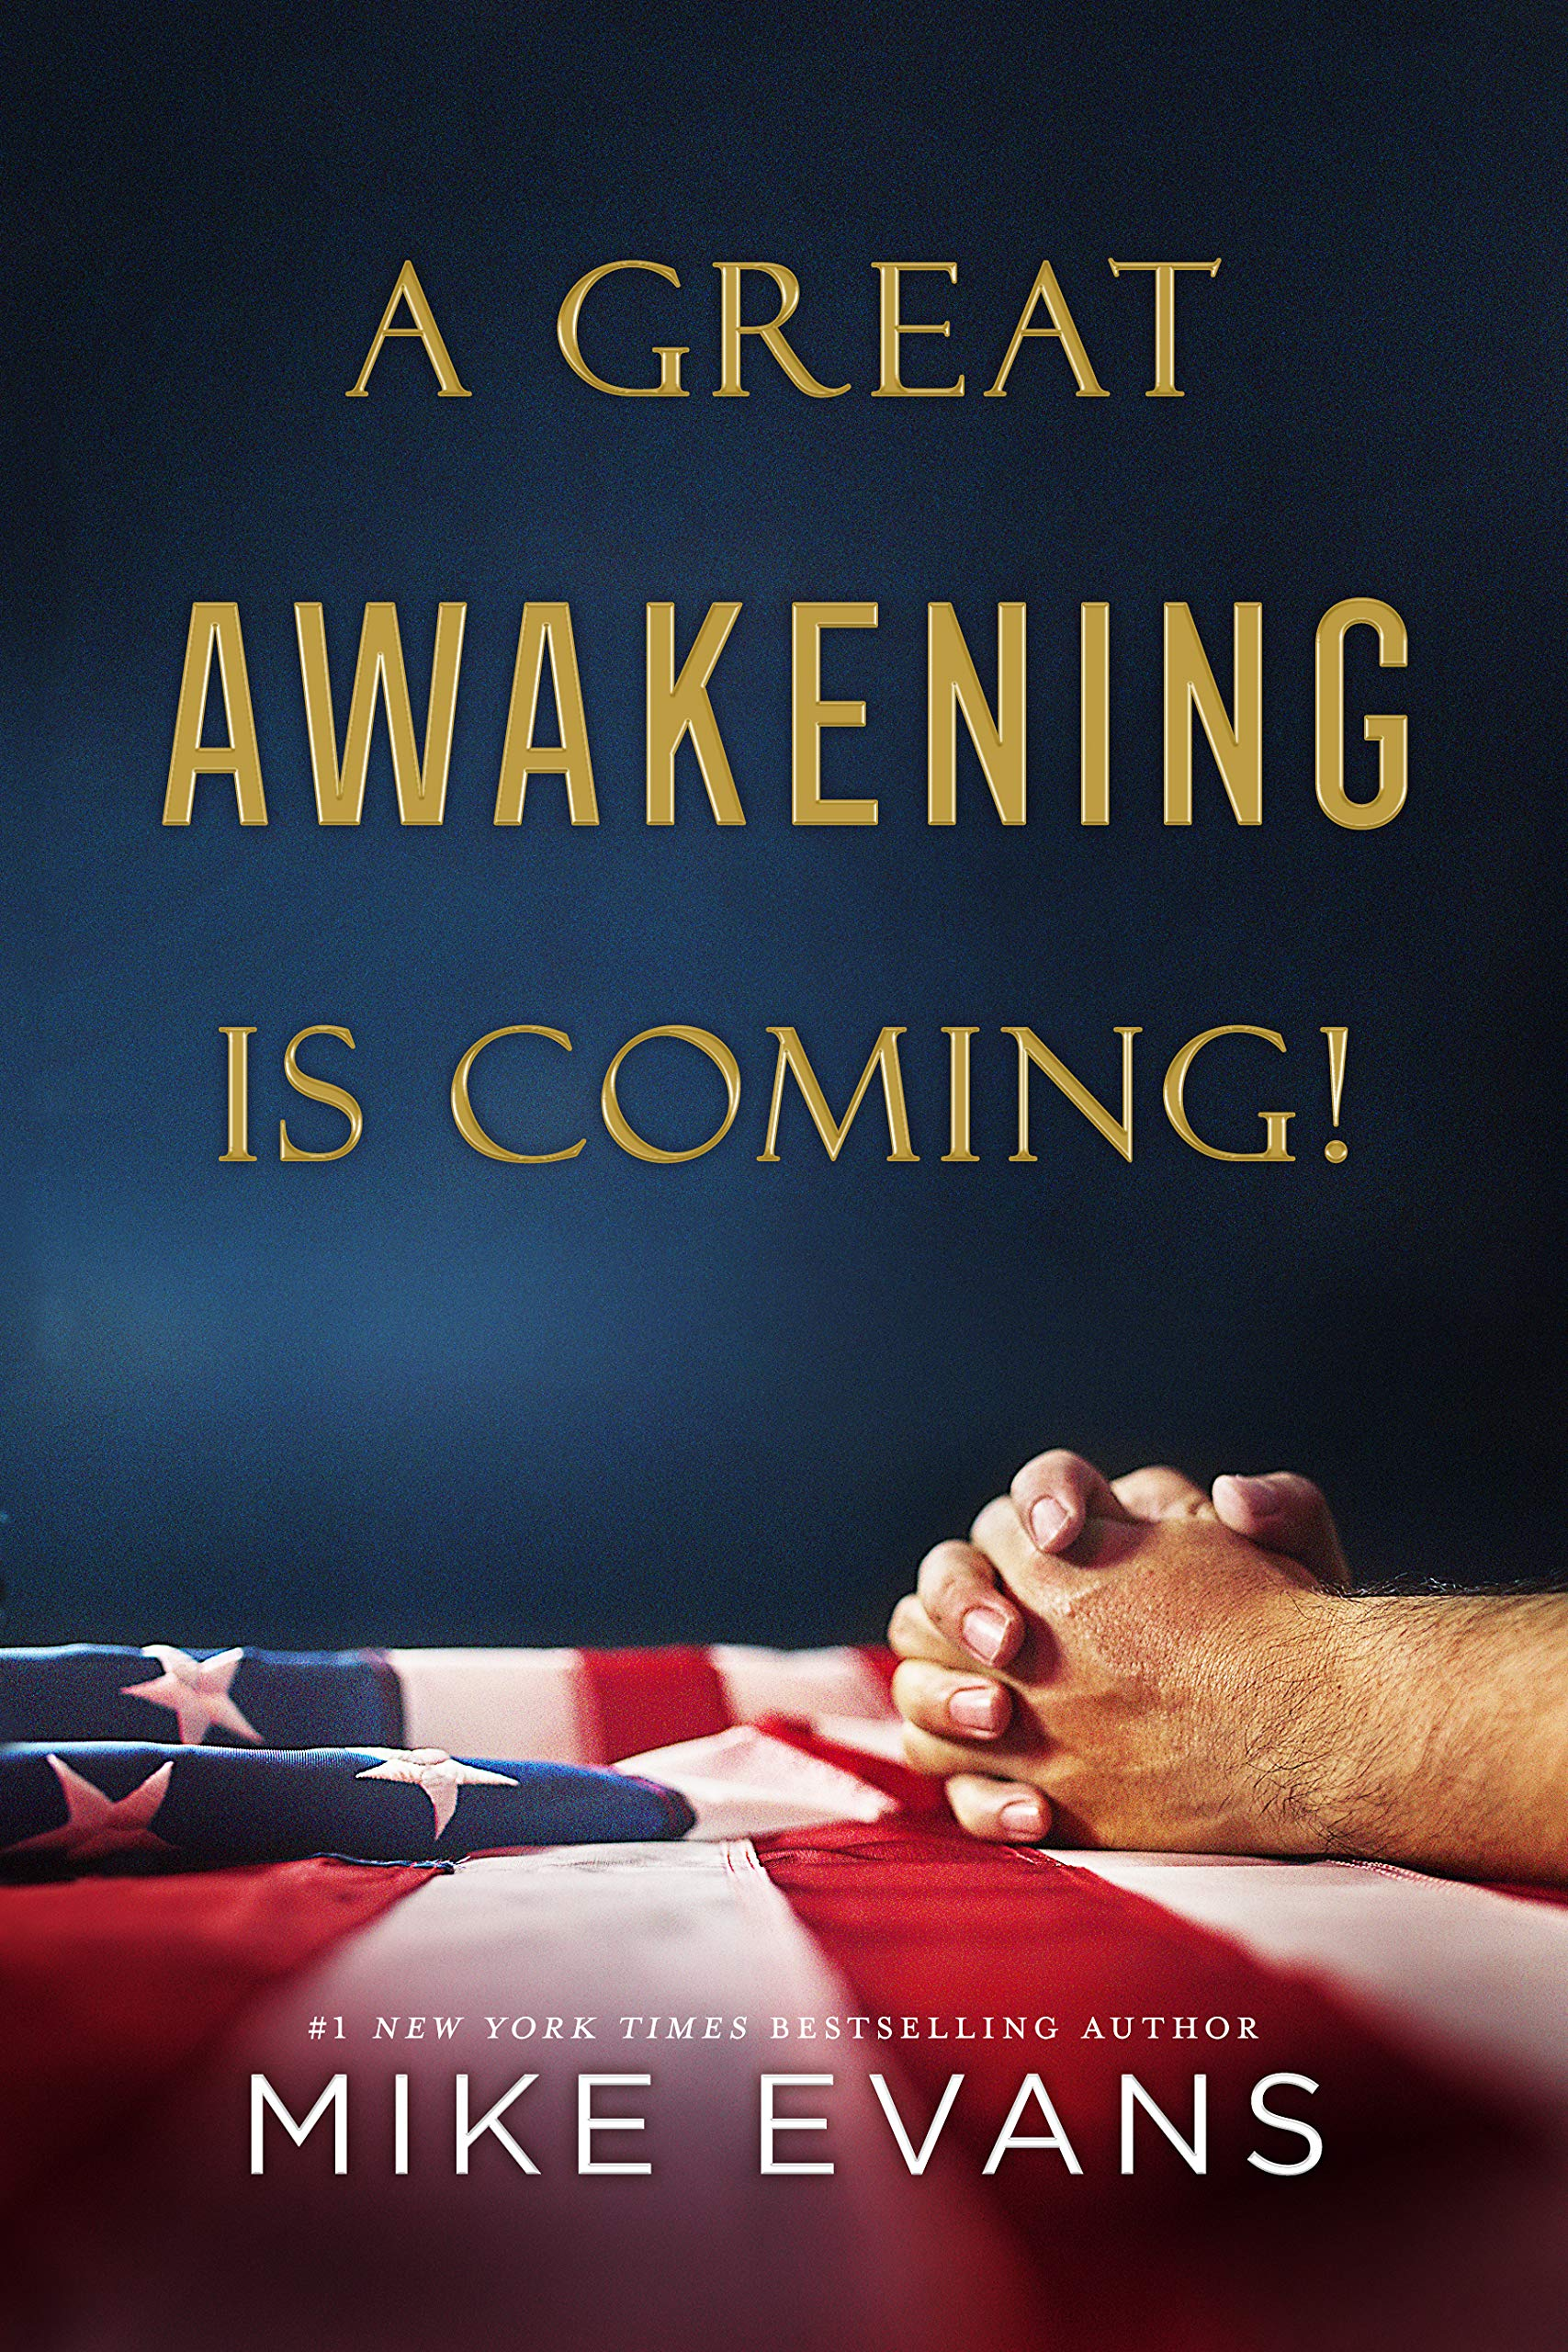 A Great Awakening Is Coming Mike Evans 9798635001530 Amazon Com Books